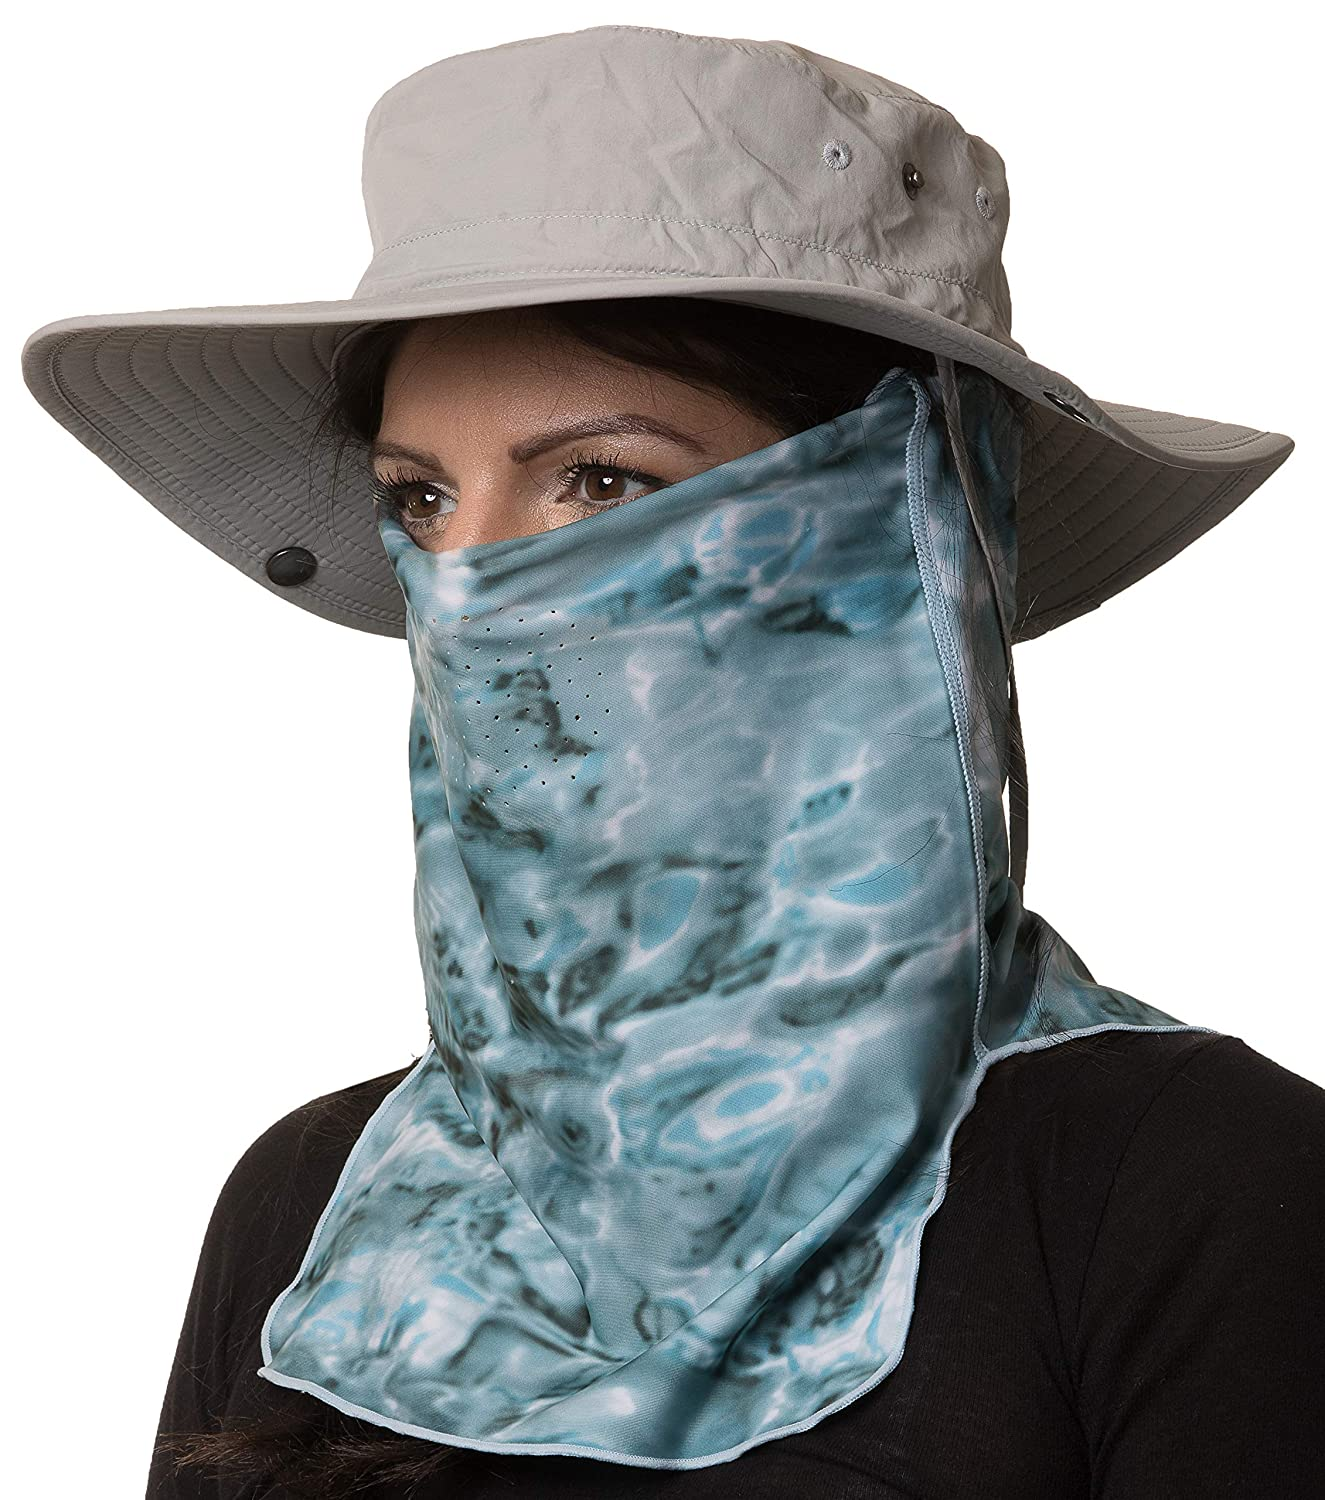 Amazon.com : Aqua Design Sun Proctection for Women Size Adjustable UPF 50+ ProMax UV Mask Tube : Sports & Outdoors